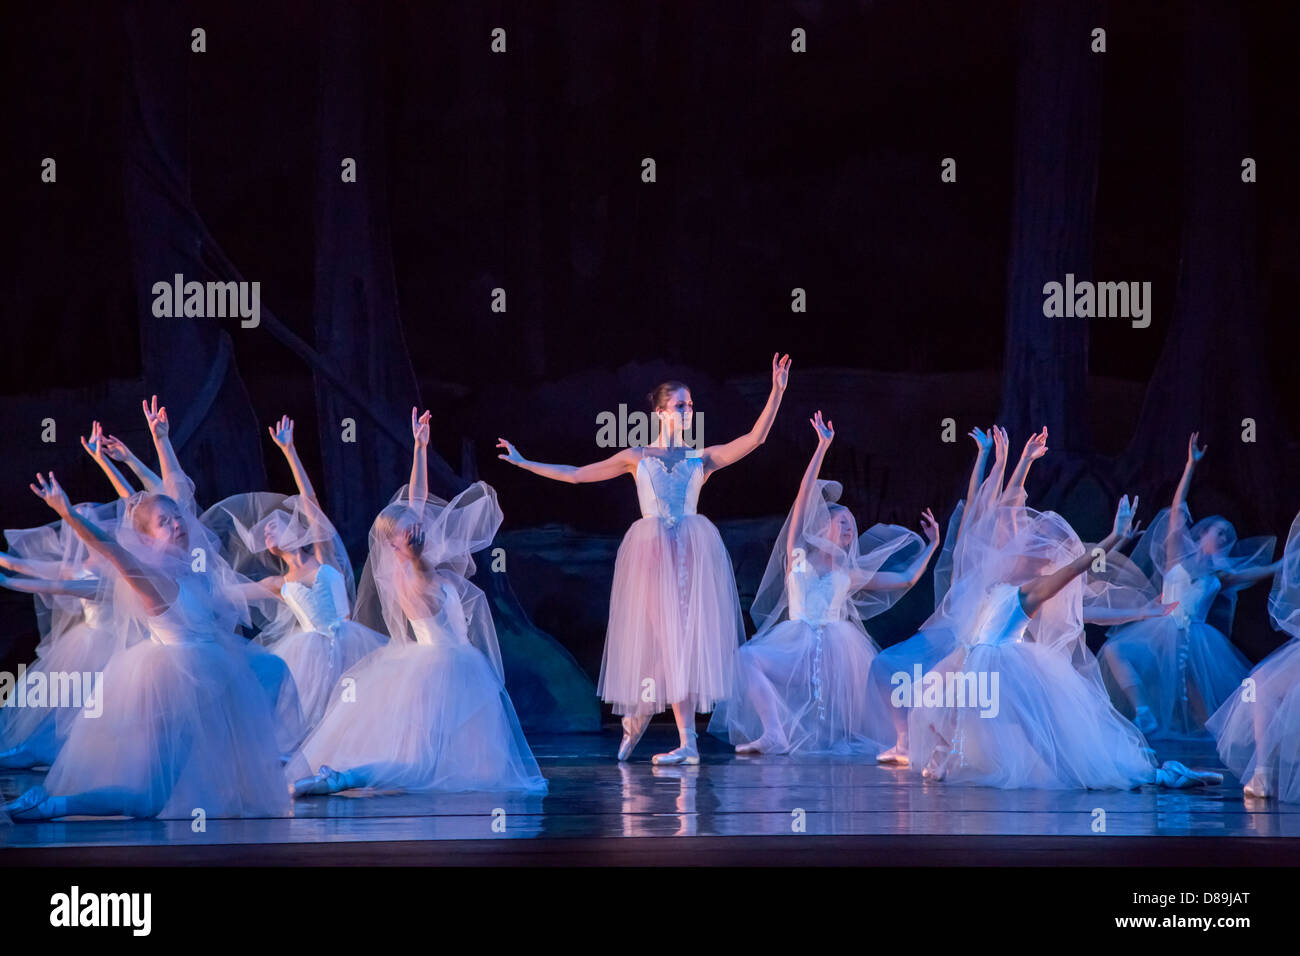 Myrta and the Wilis in Giselle ballet - Stock Image